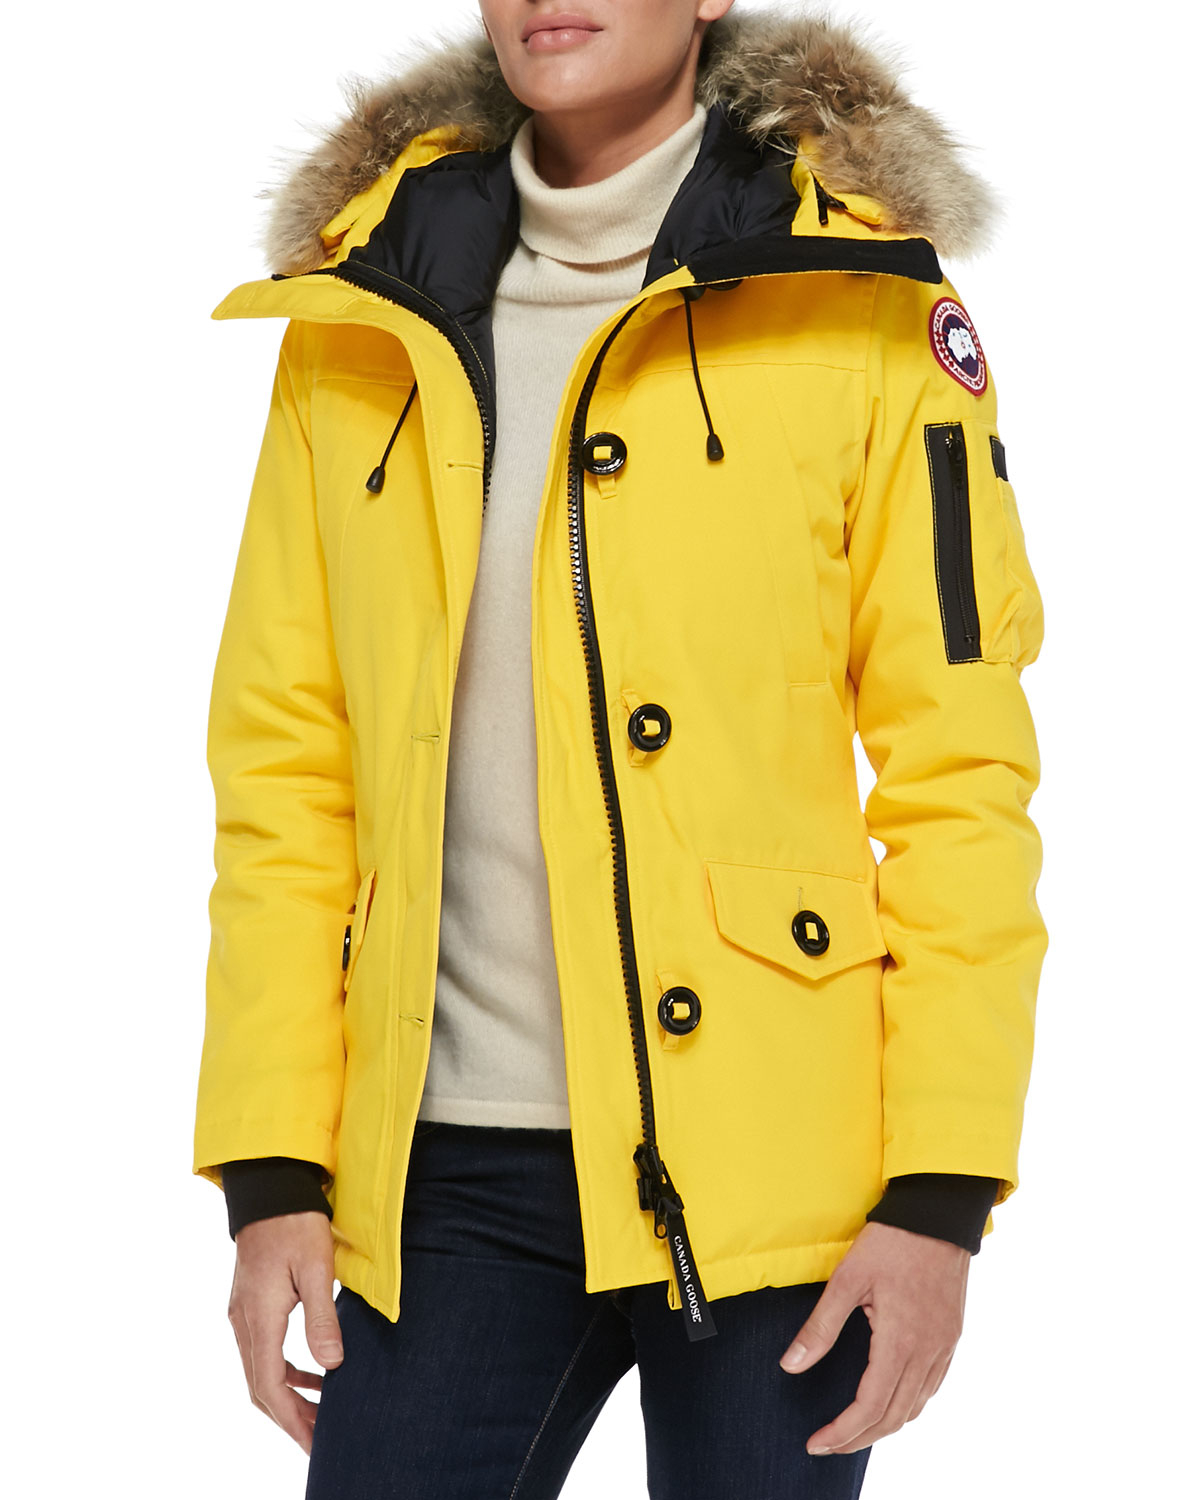 Canada Goose womens replica price - Canada goose Montebello Parka With Fur Hood in Yellow (NAVY) | Lyst